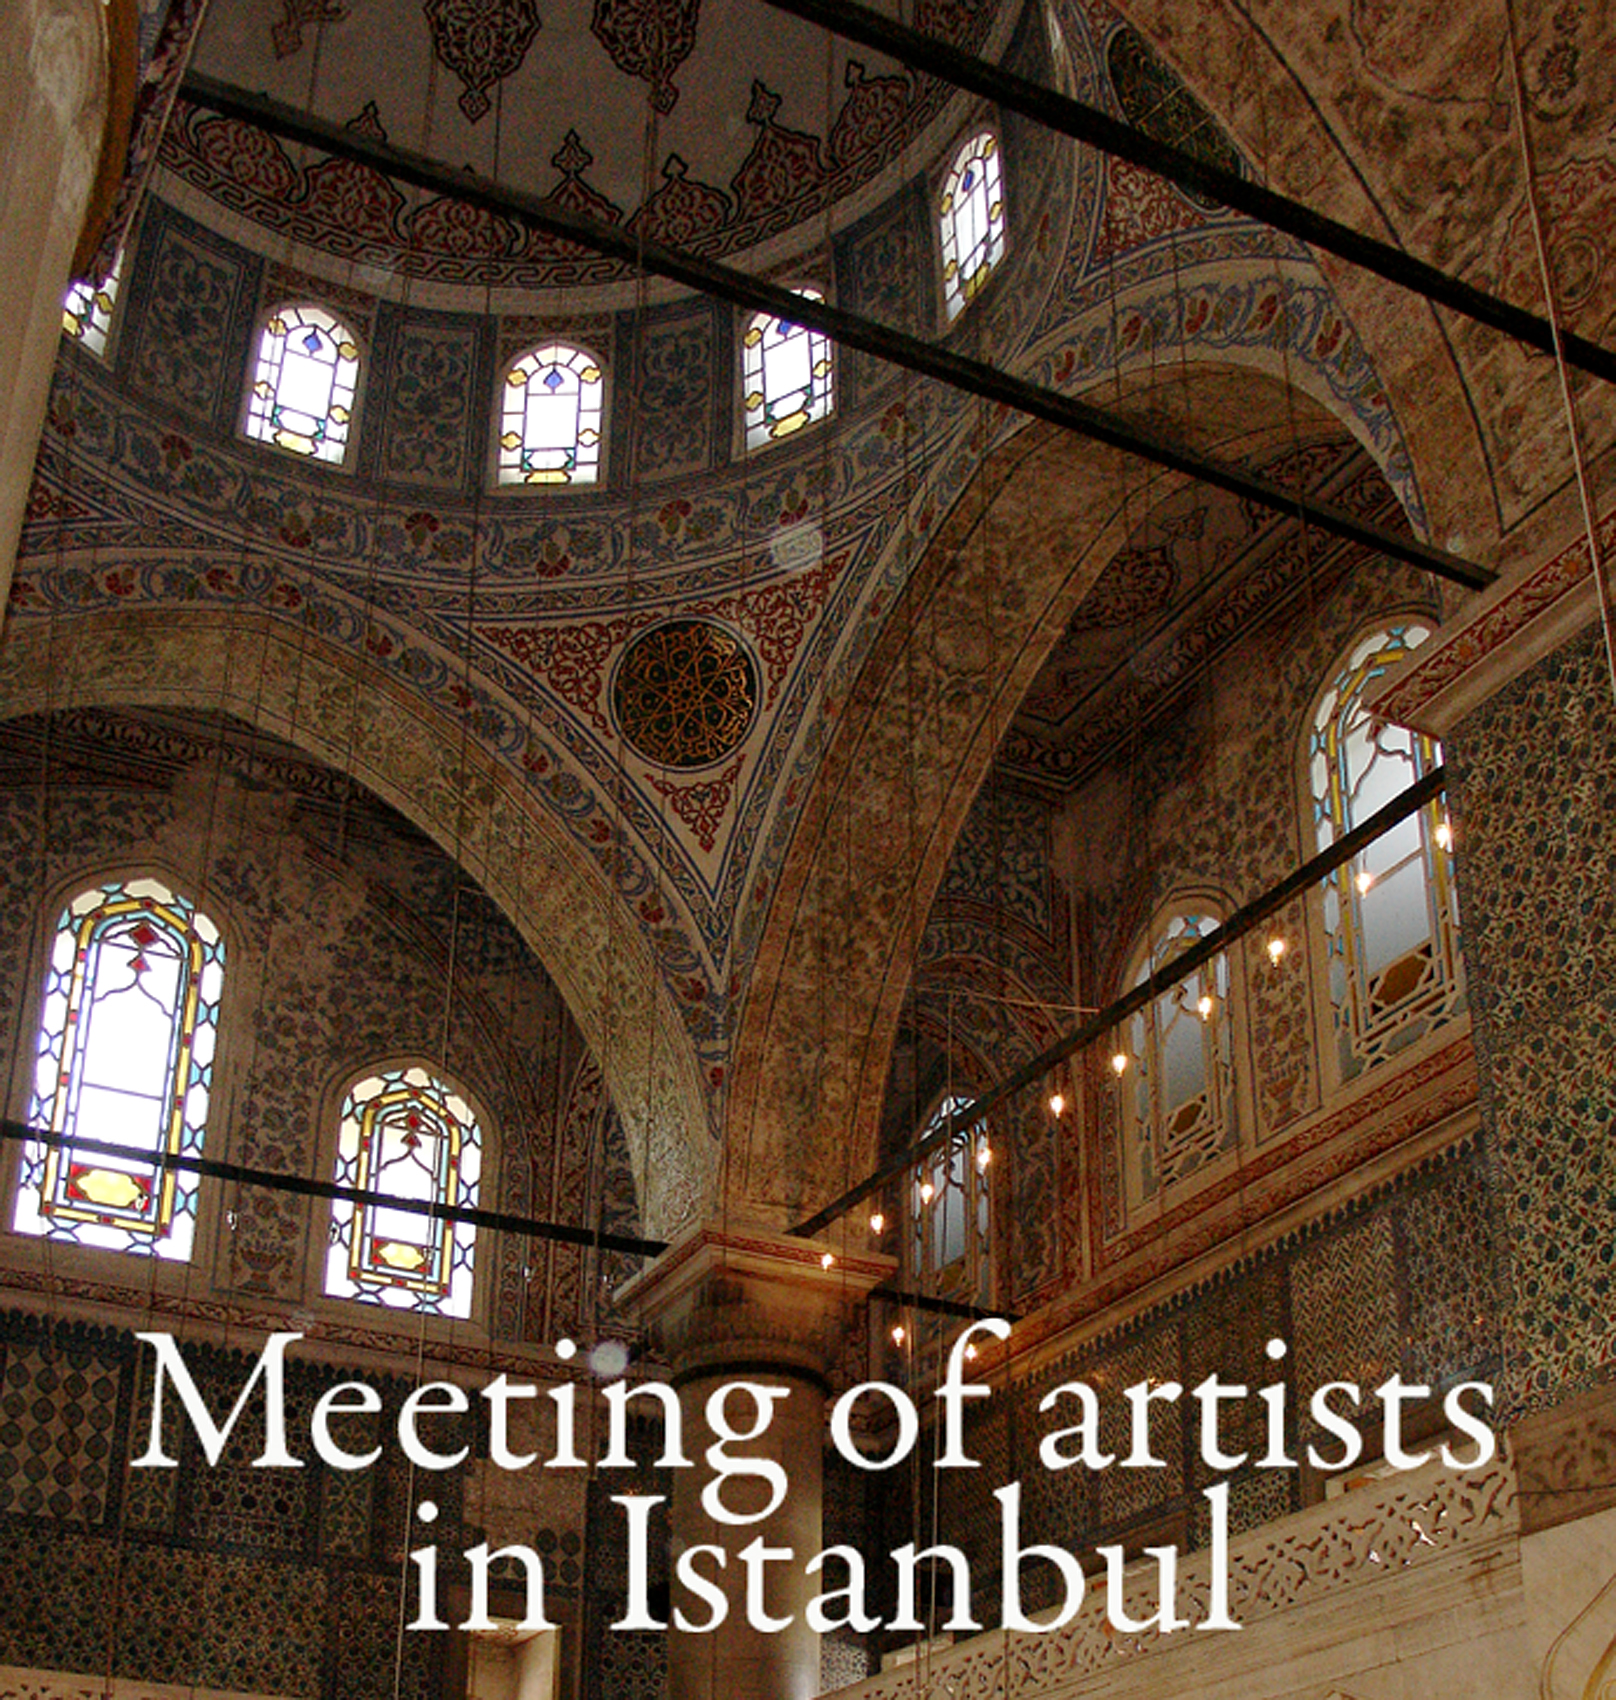 1. Meeting of artists in Istanbul.jpg